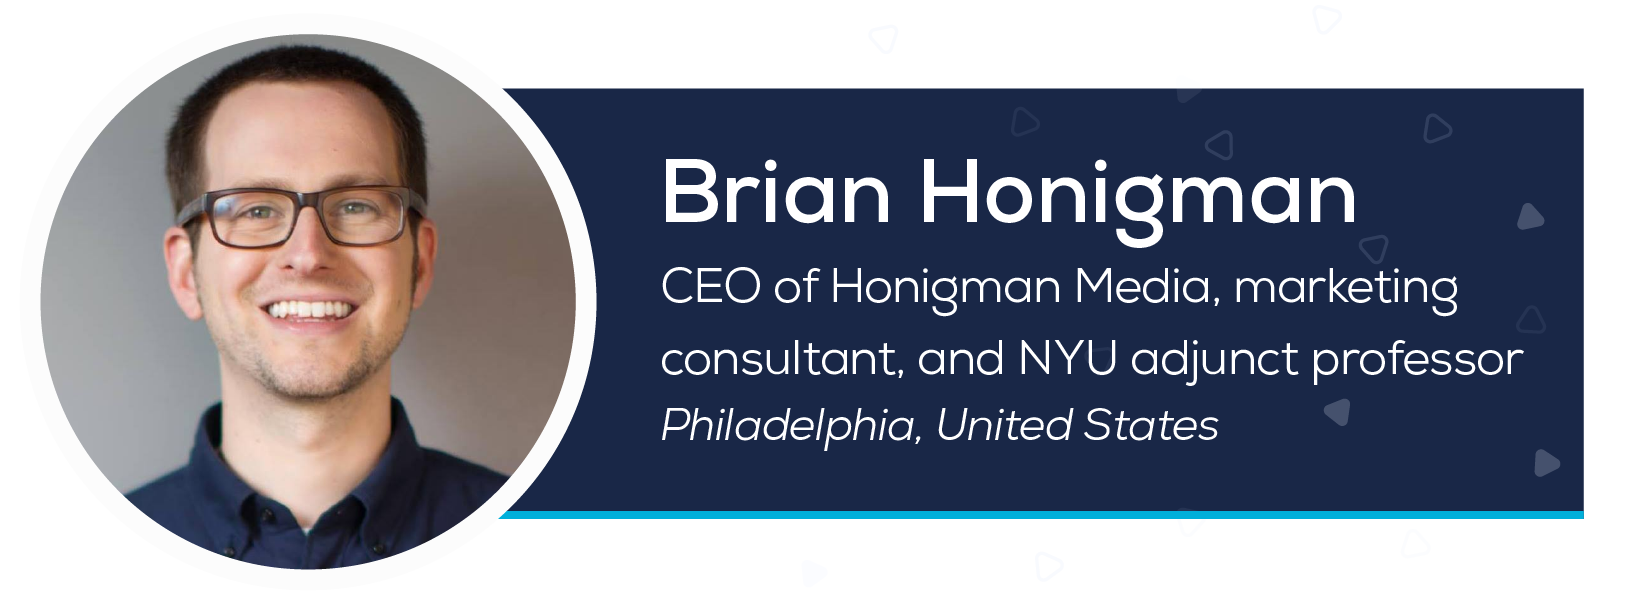 Brian Honigman interview Freshworks